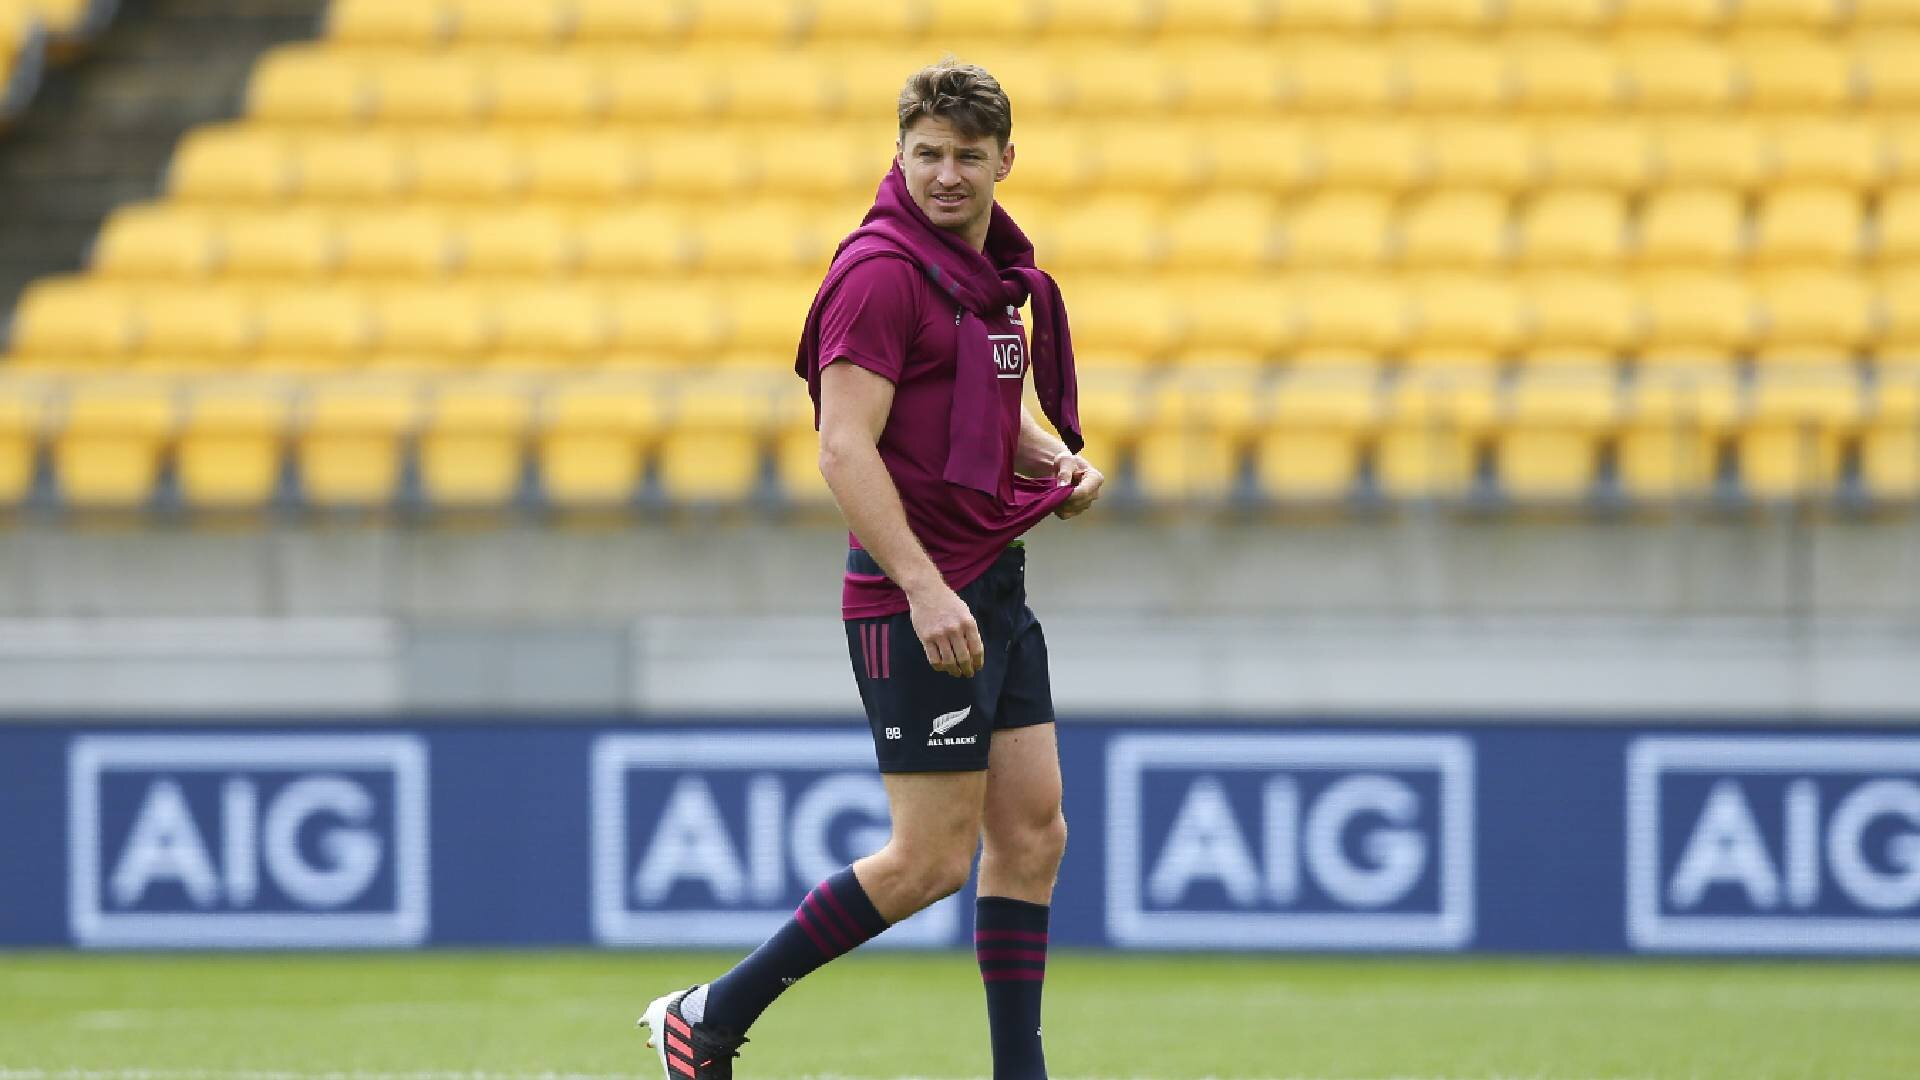 From fatherhood and injuries to the Bledisloe Cup: Beauden Barrett's disruptive road back into the All Blacks